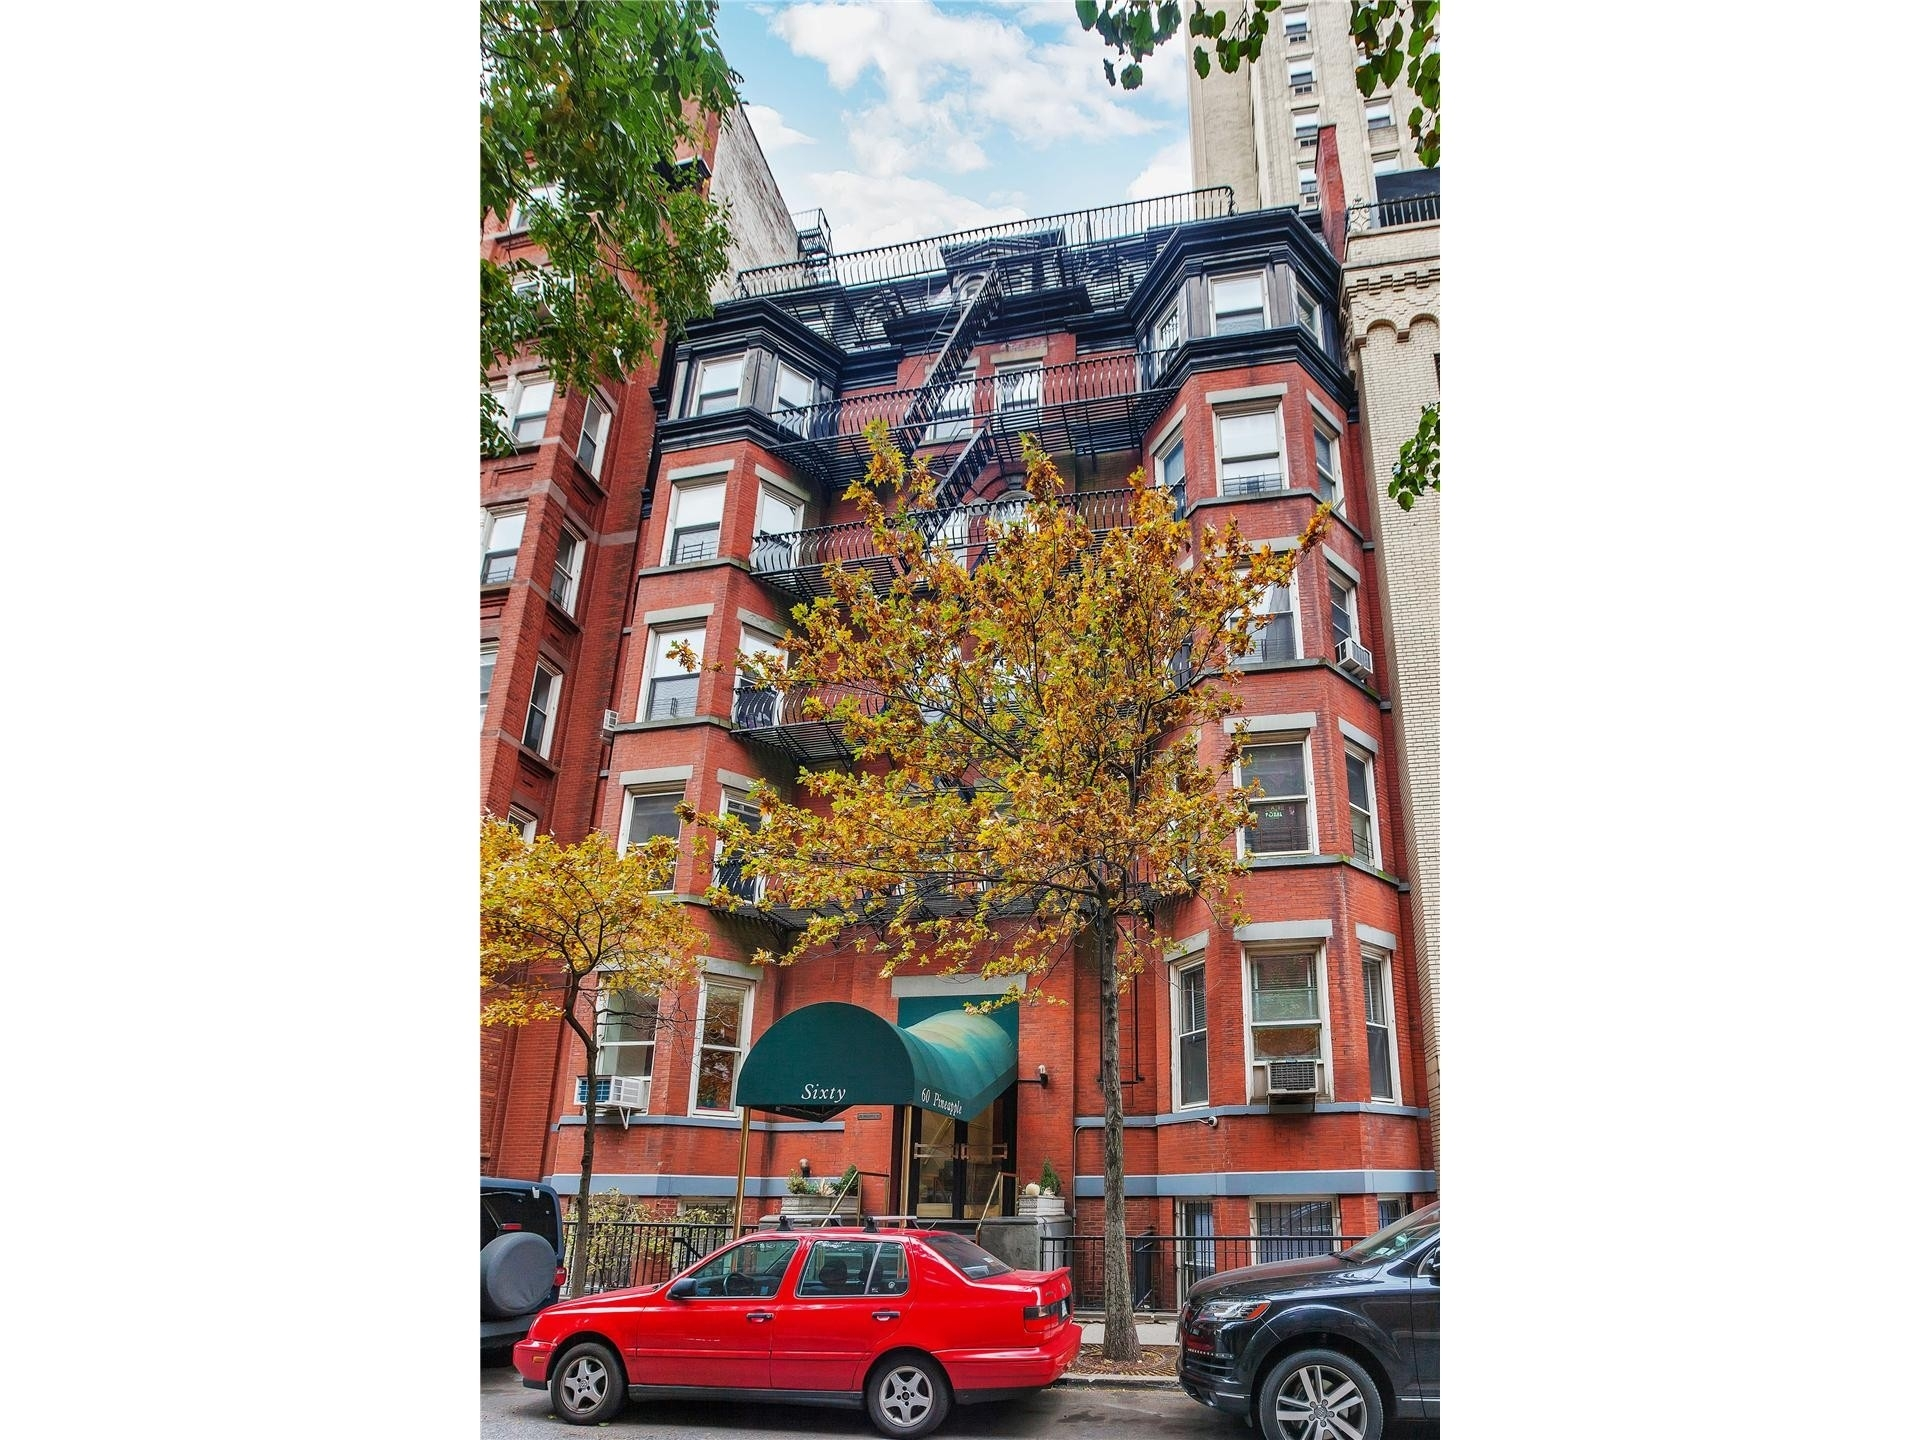 1. 建於60 Pineapple St, Brooklyn Heights, Brooklyn, NY